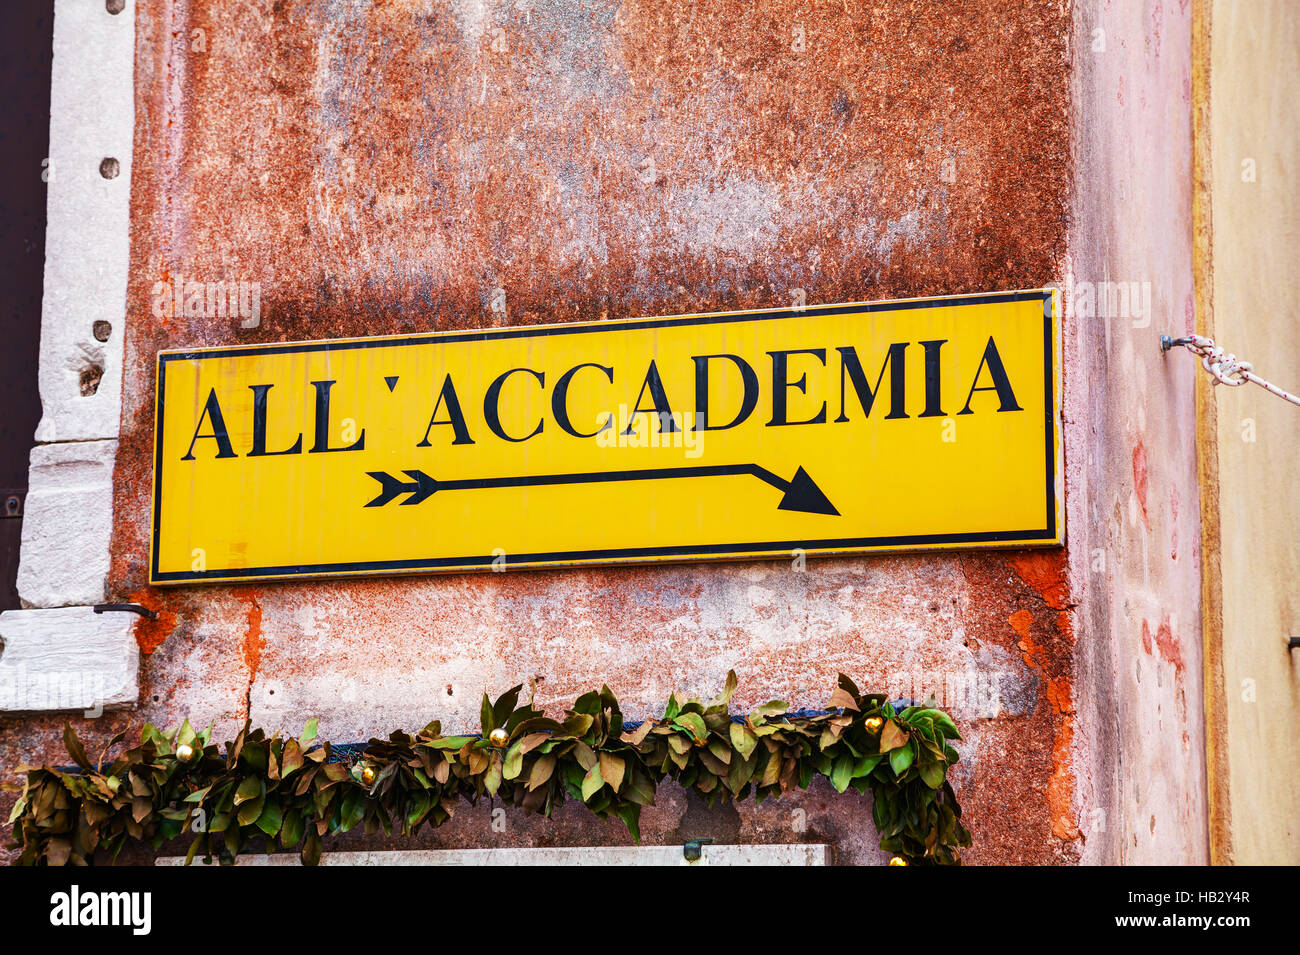 All Accademia direction sign in Venice - Stock Image